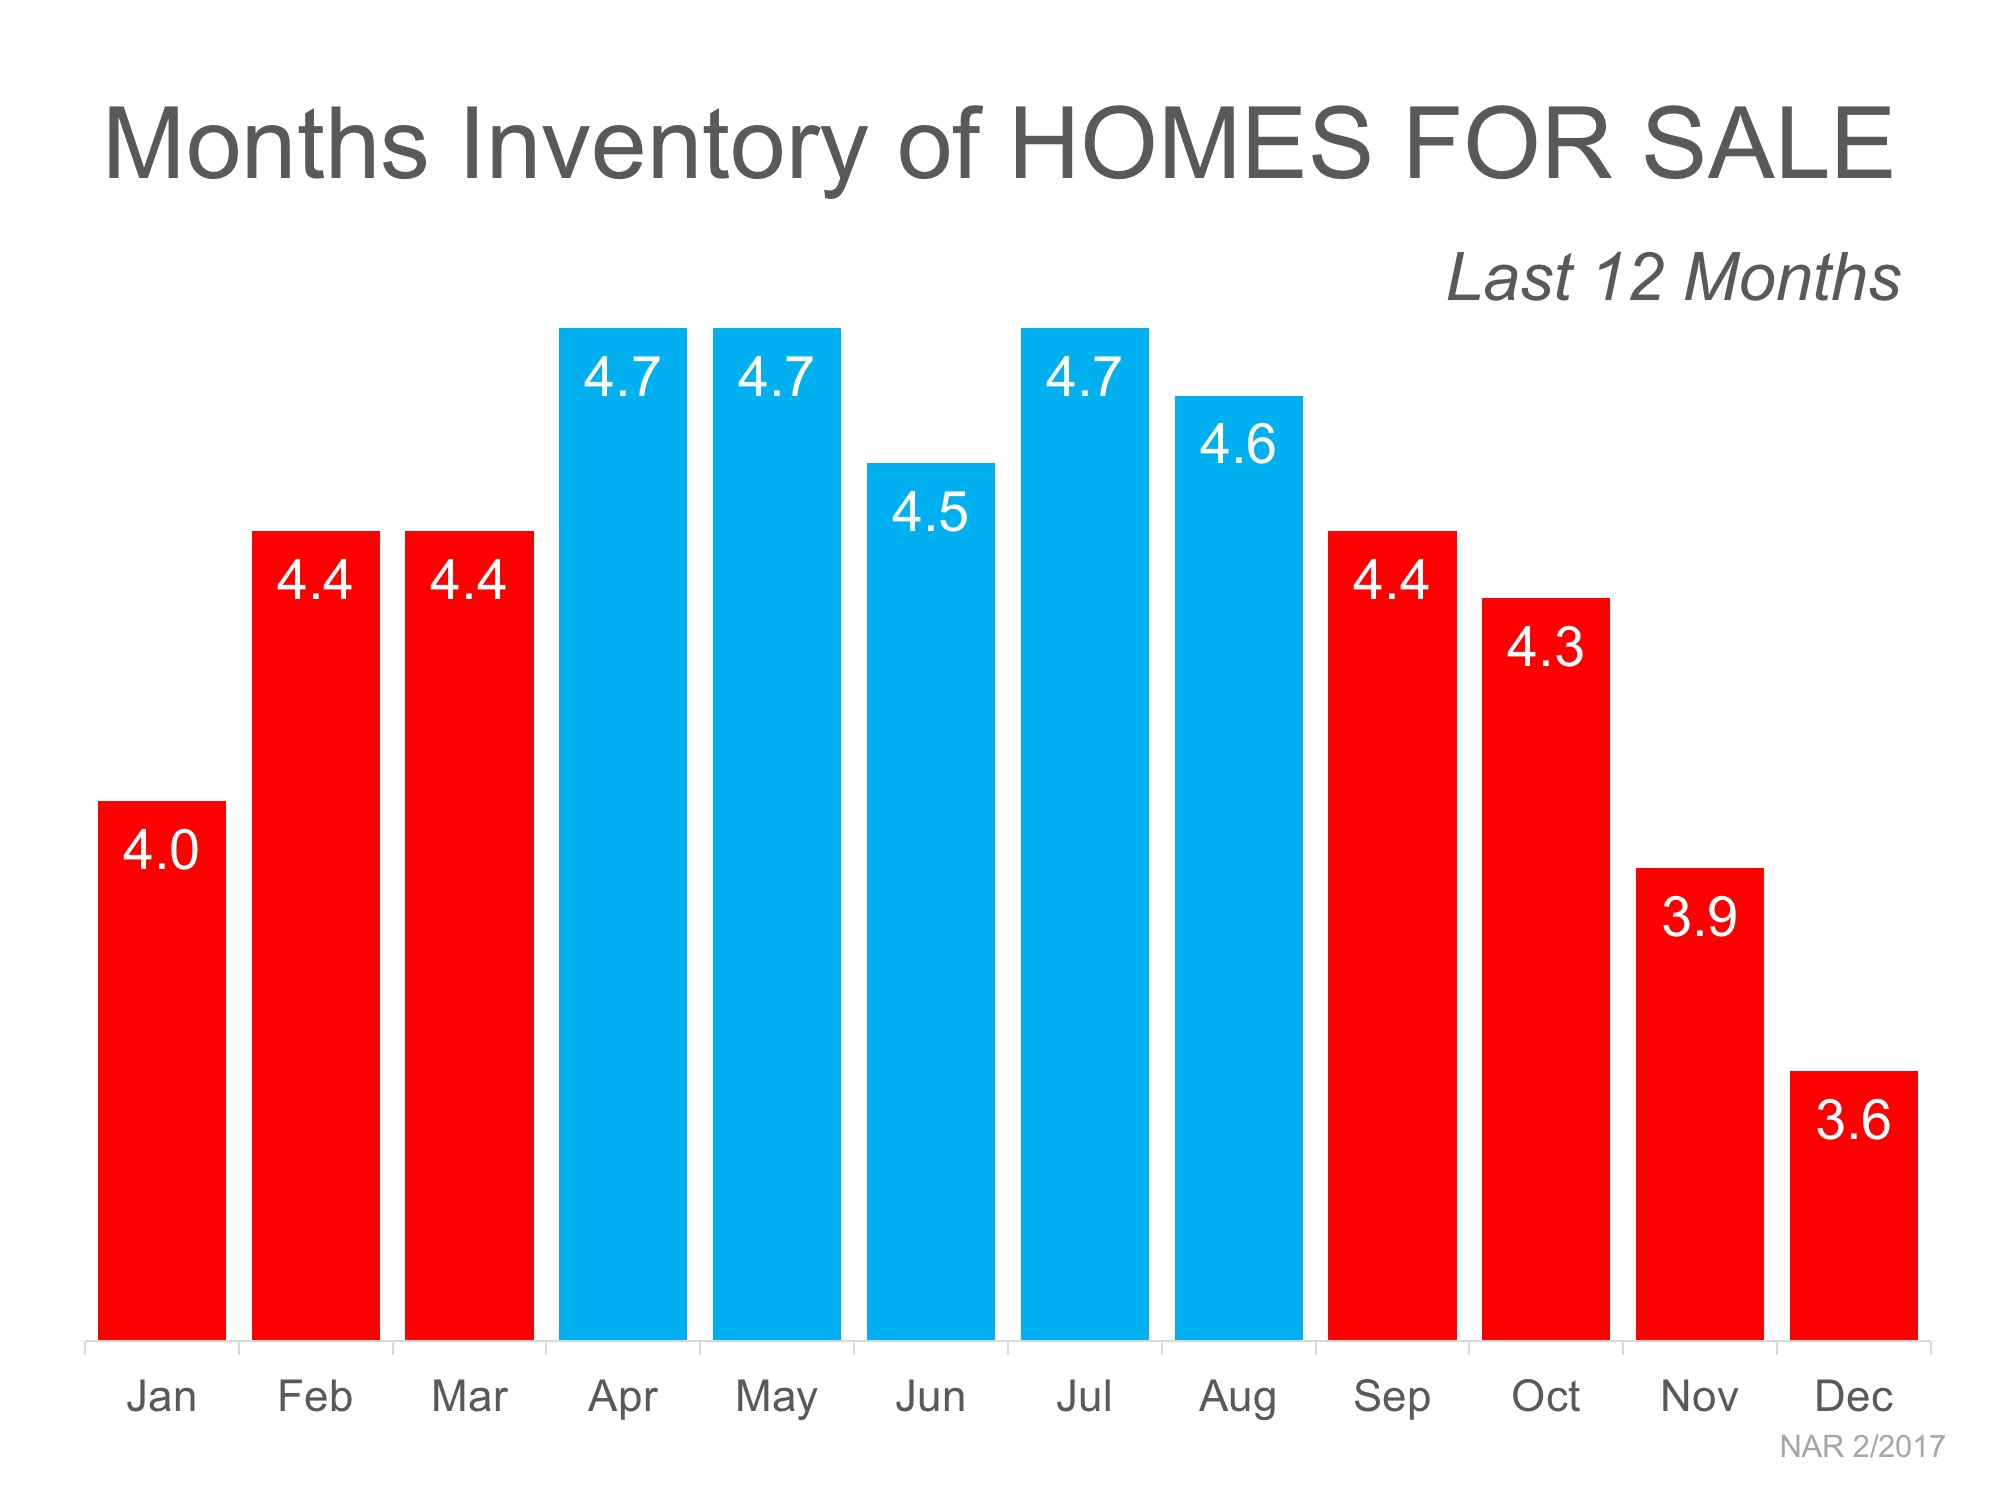 Months of Inventory of Homes